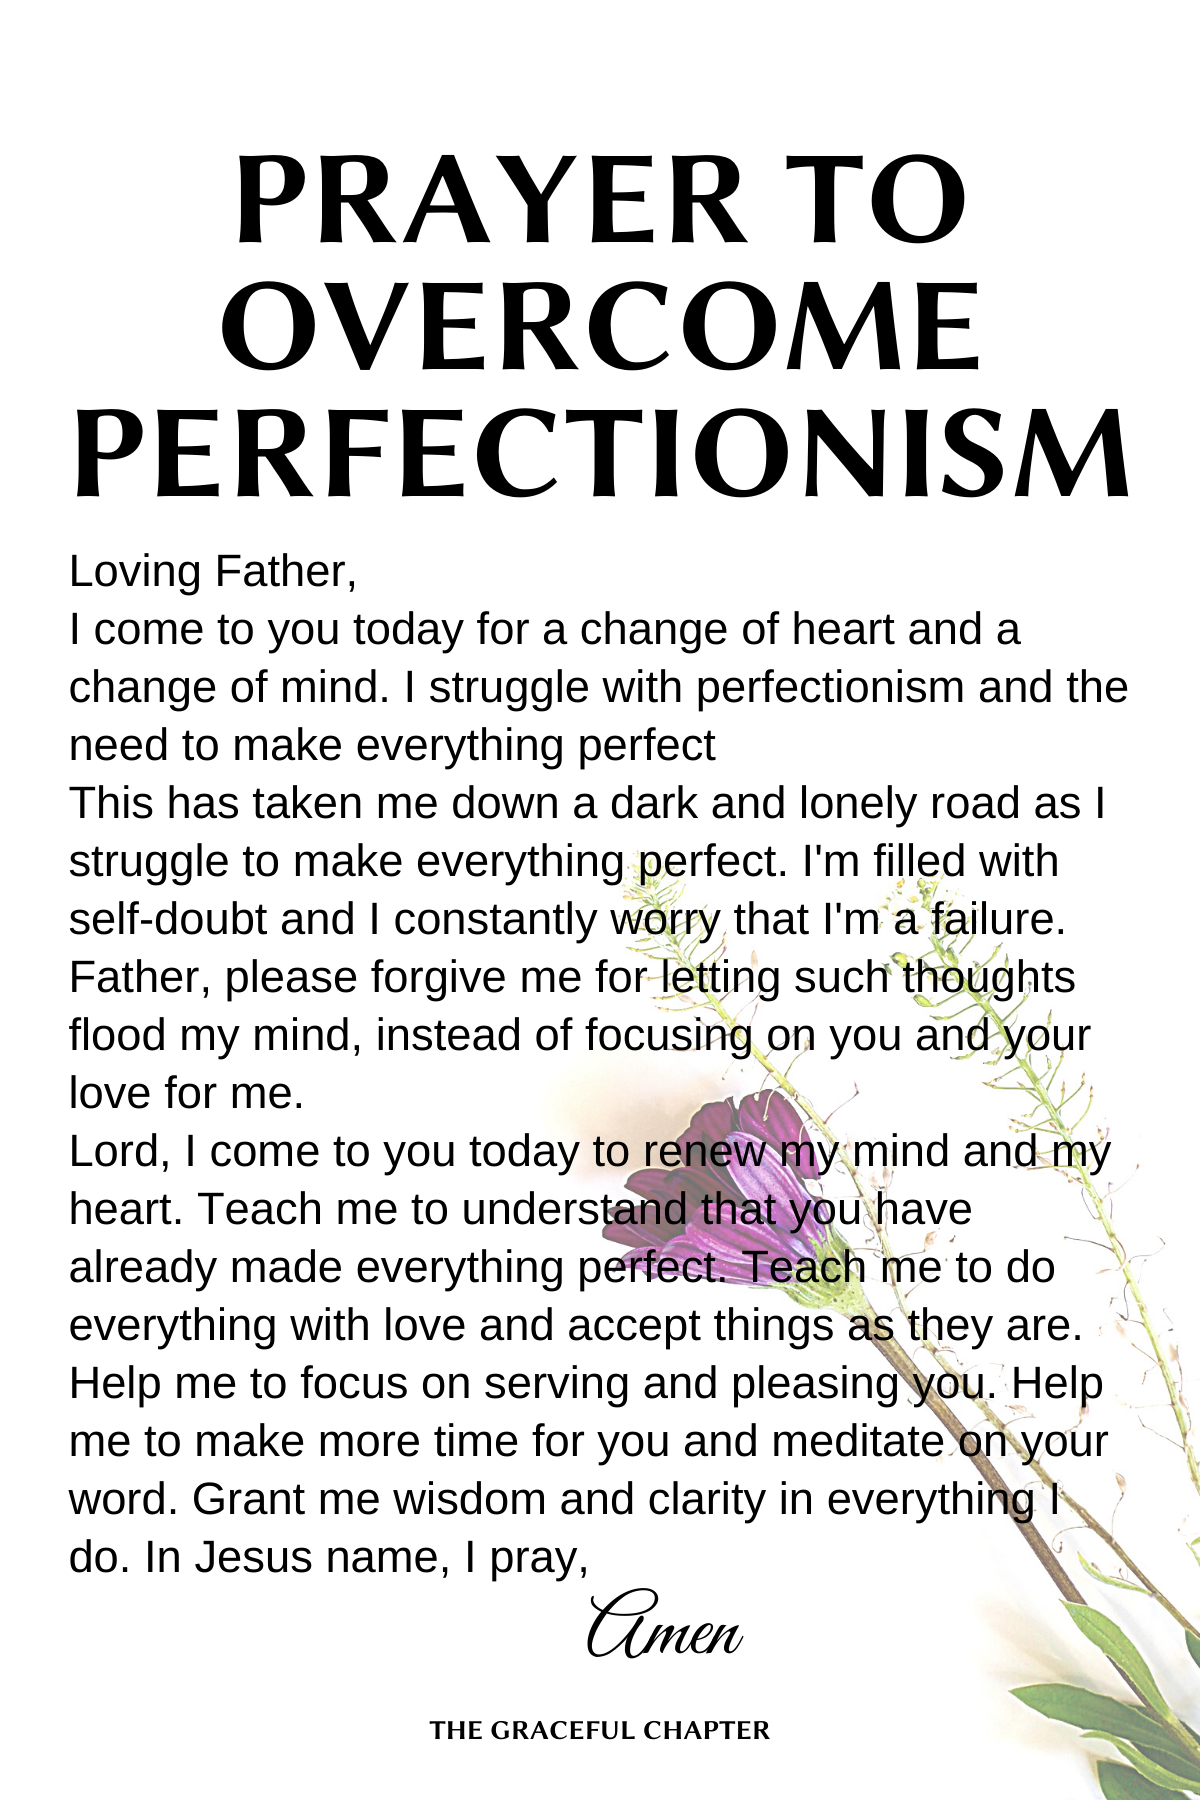 Prayer to overcome perfectionism